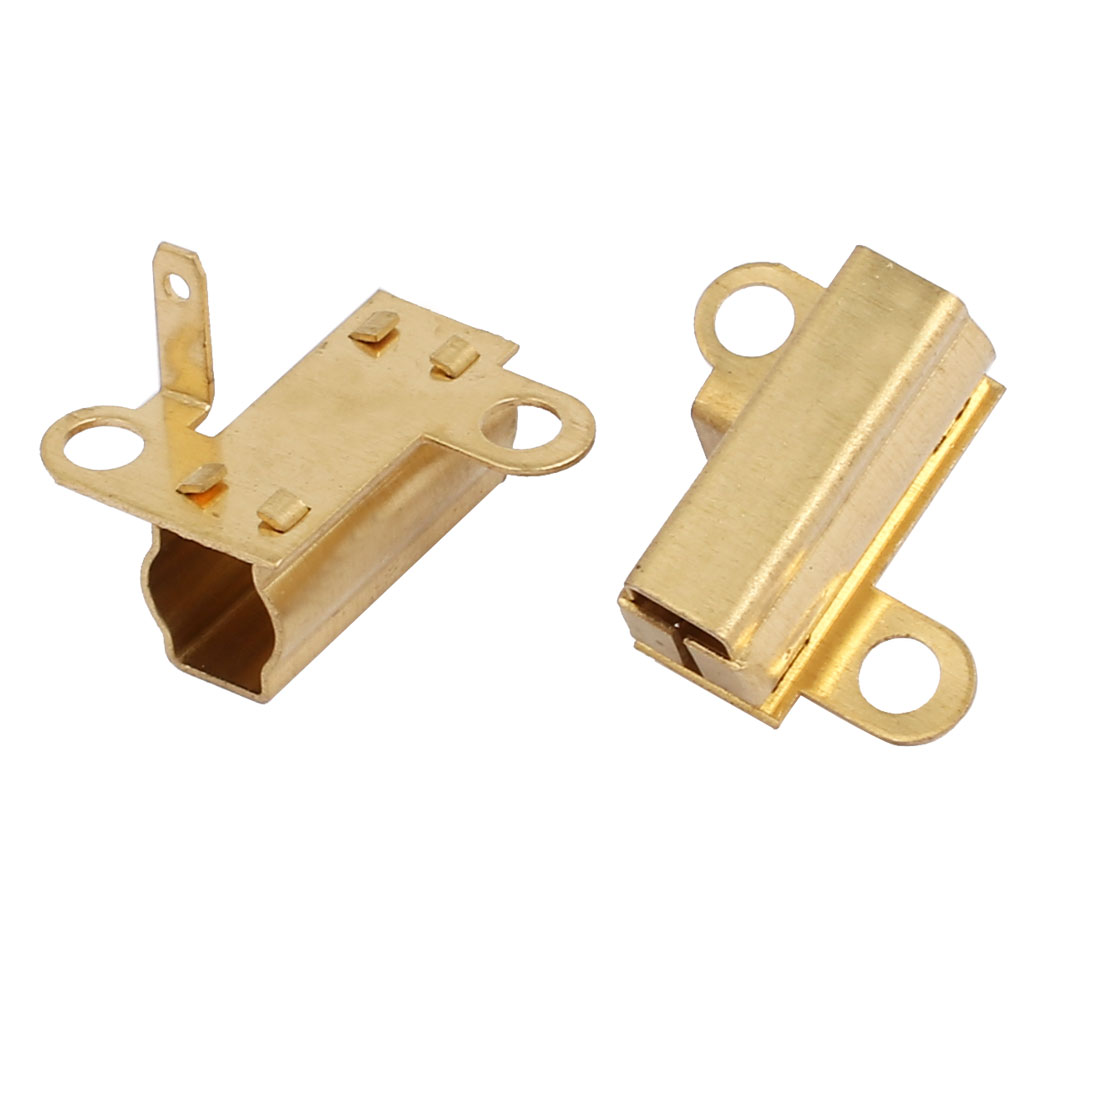 Carbon Brush Holder Gold Tone 2pcs for Bosch GBH2-20S Electric Hammer